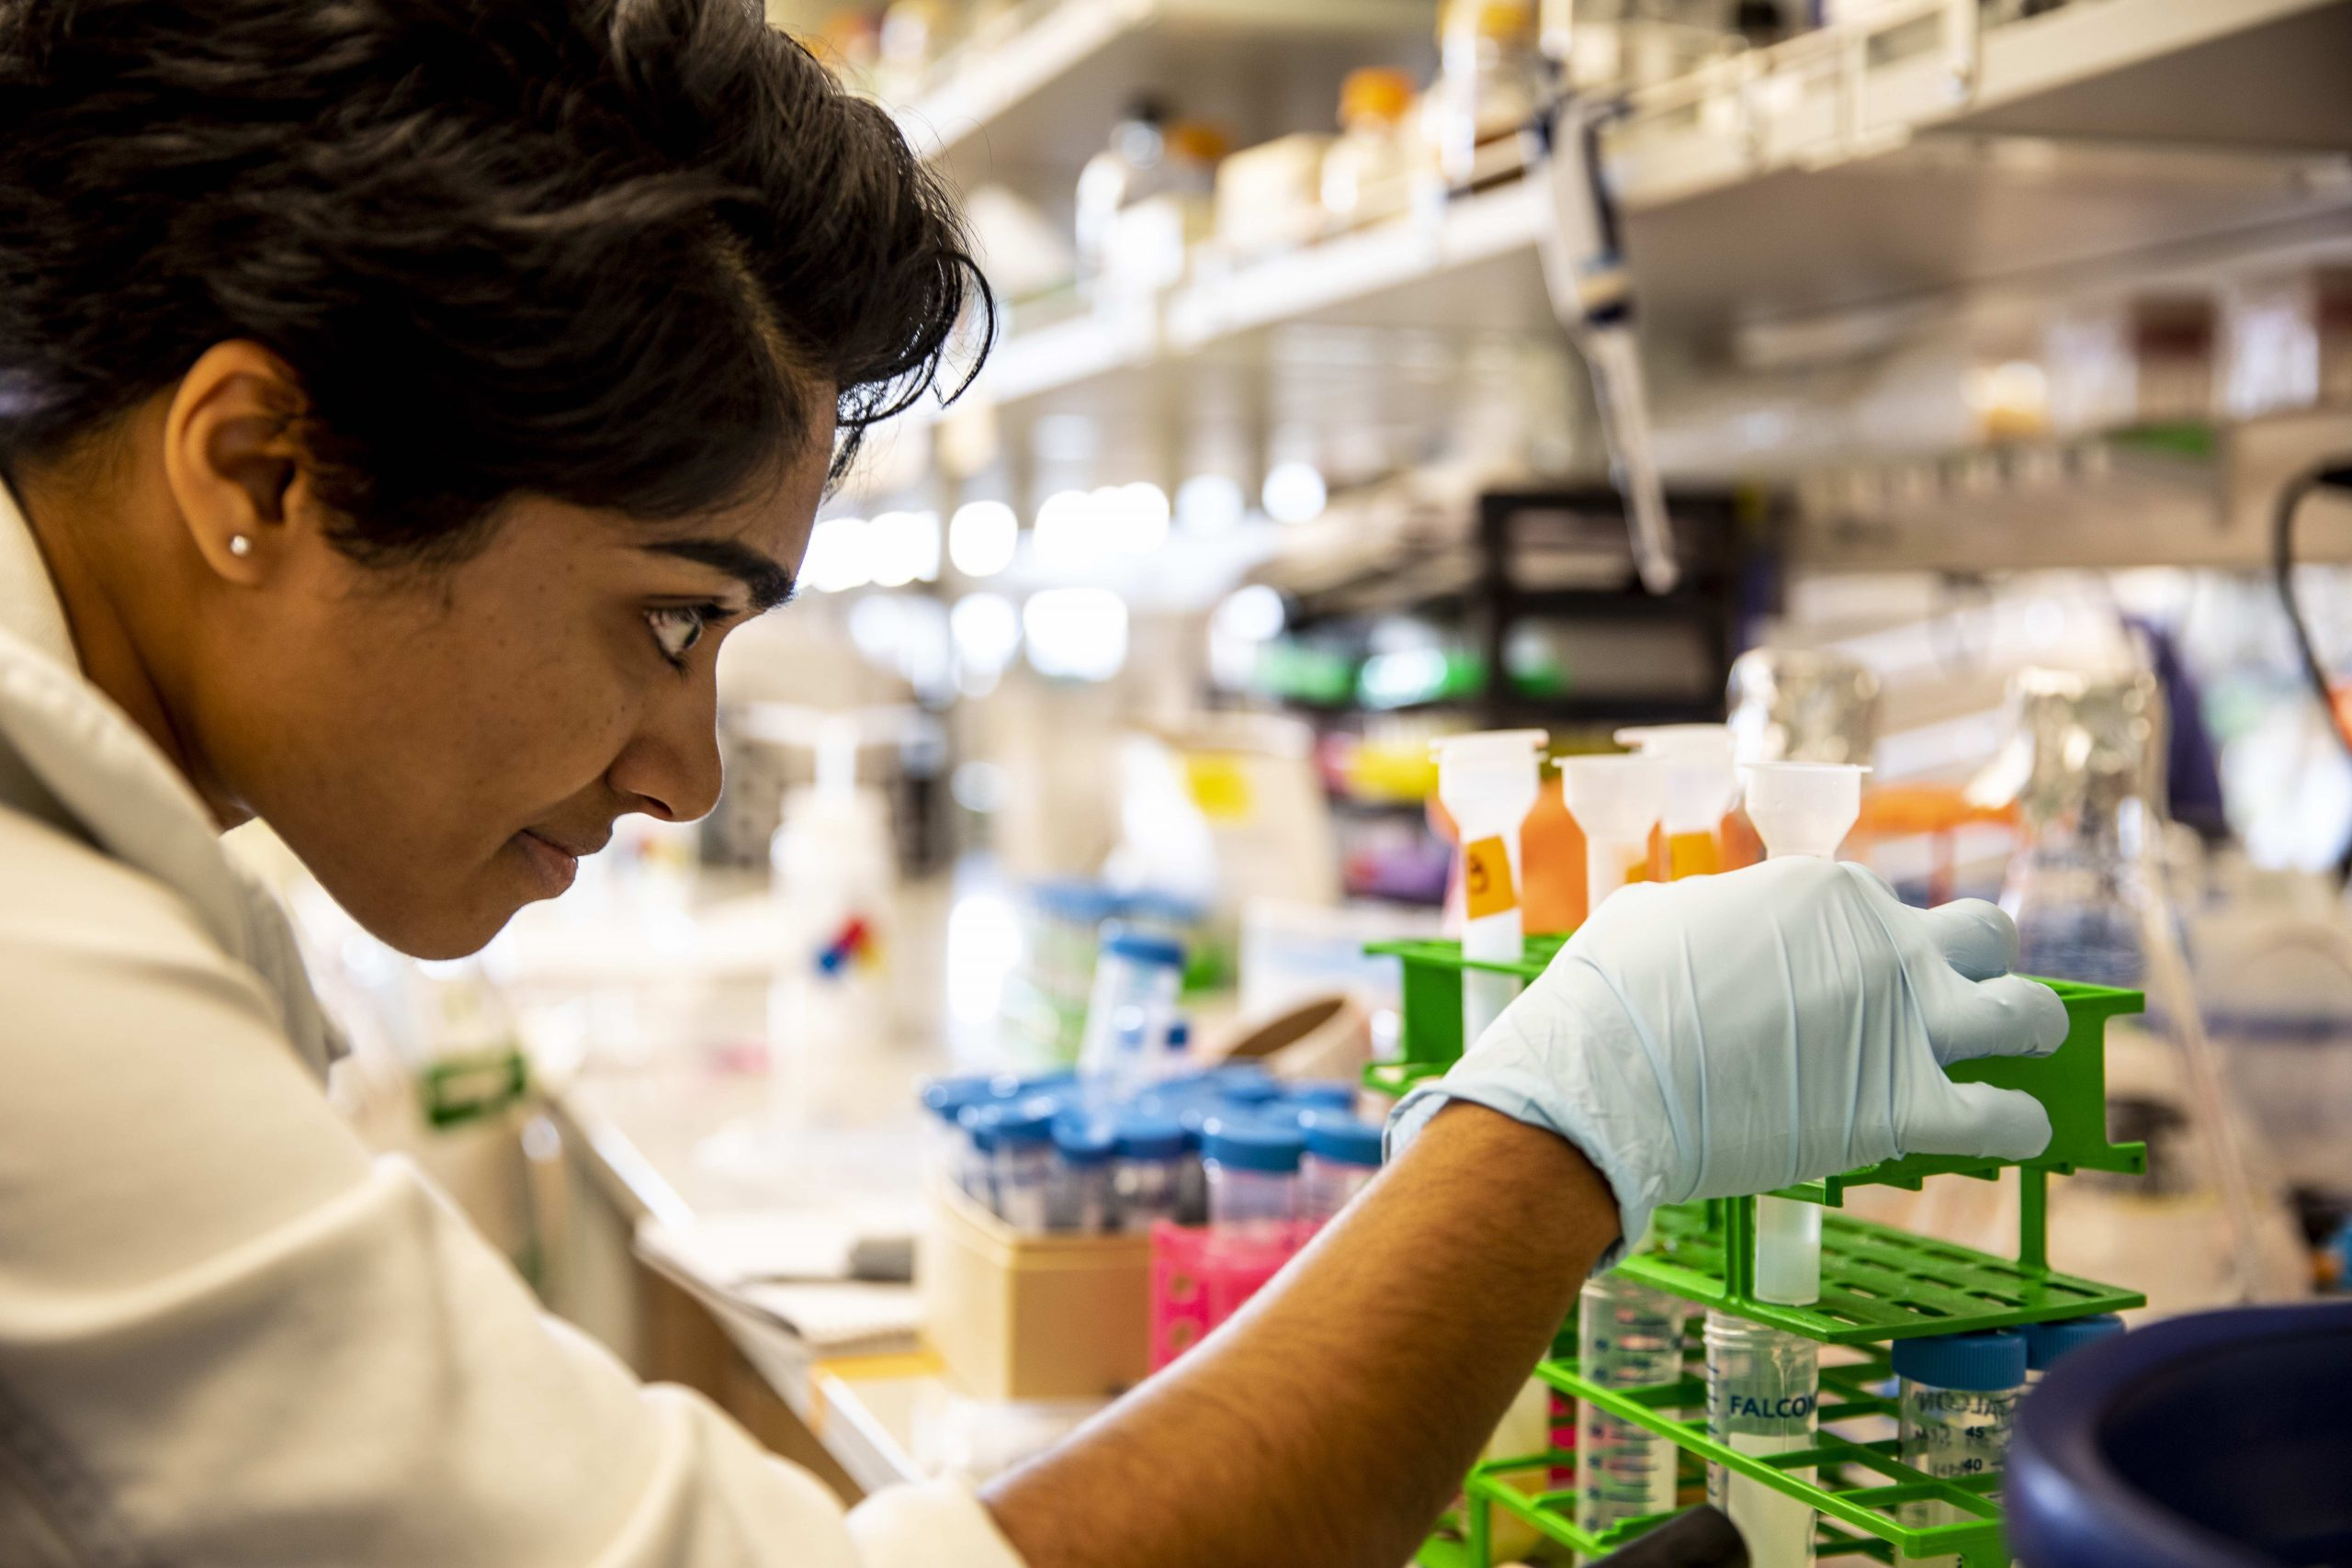 Woman examines conical tubes at lab bench